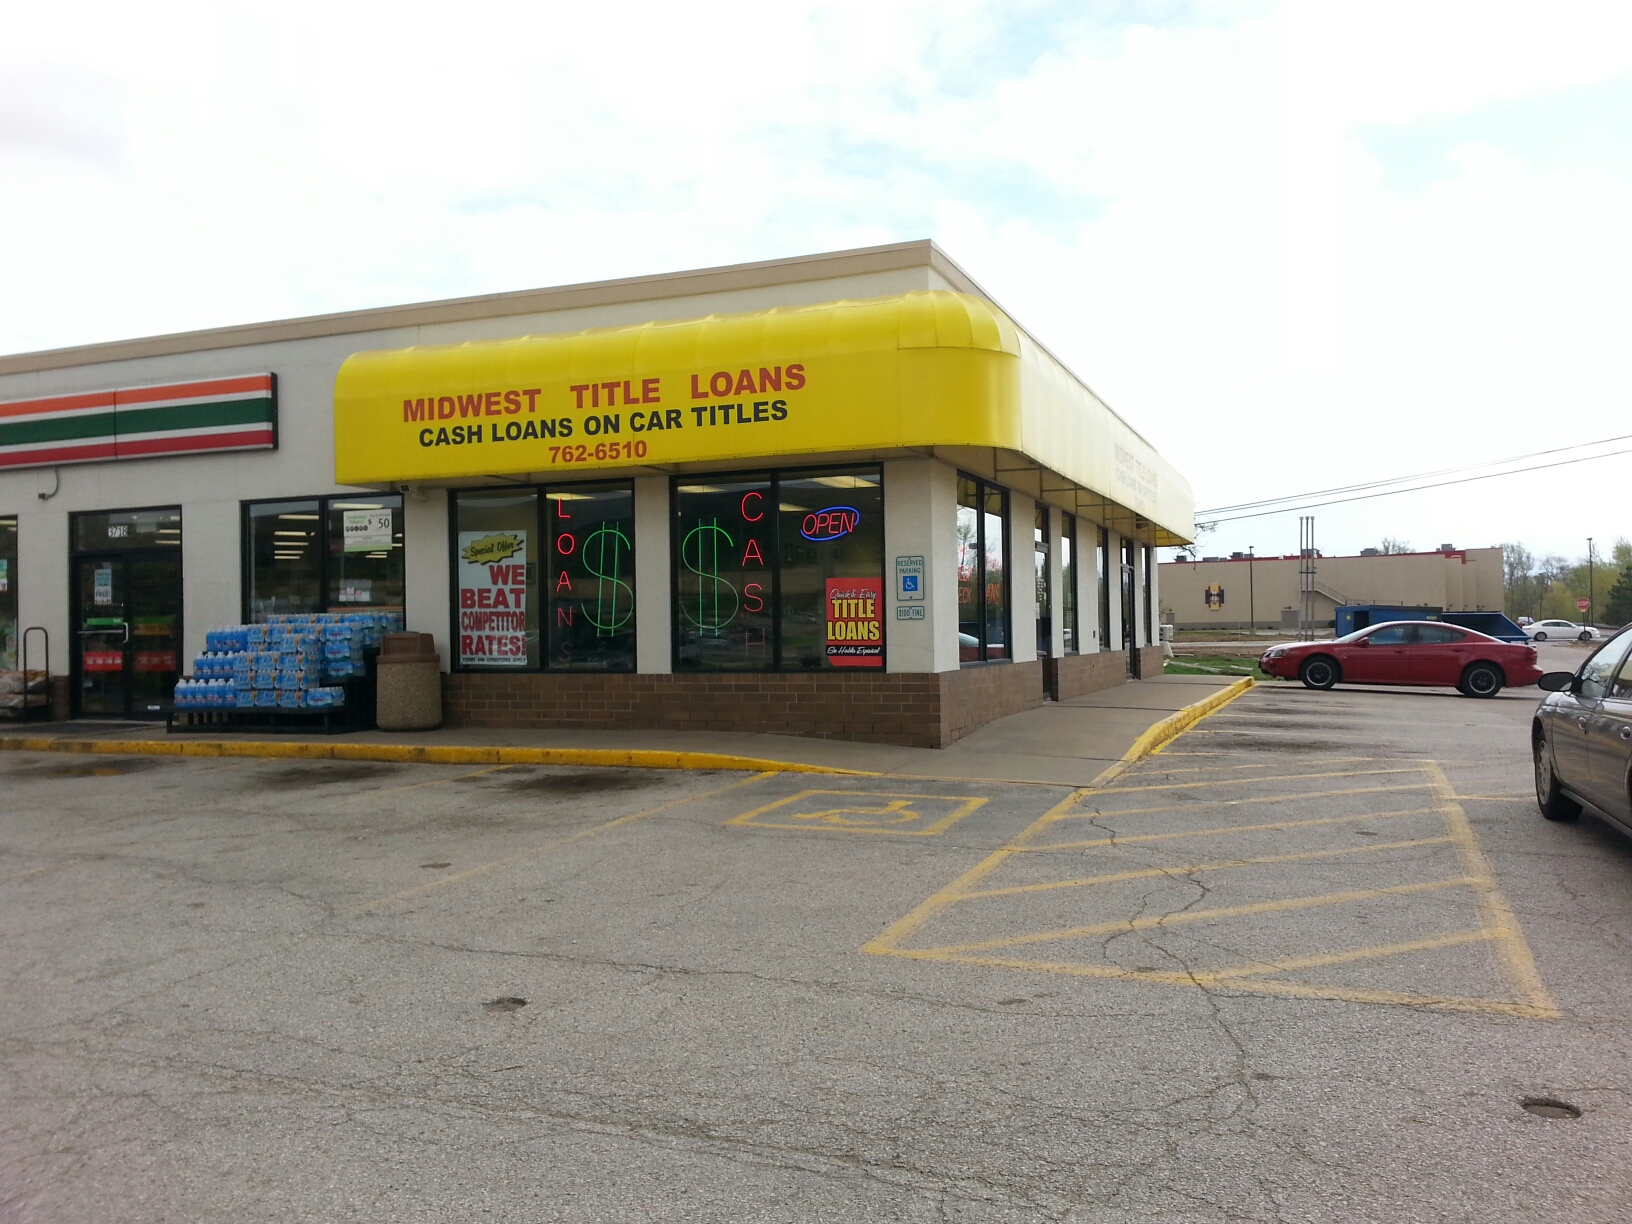 Midwest Title Loans image 1